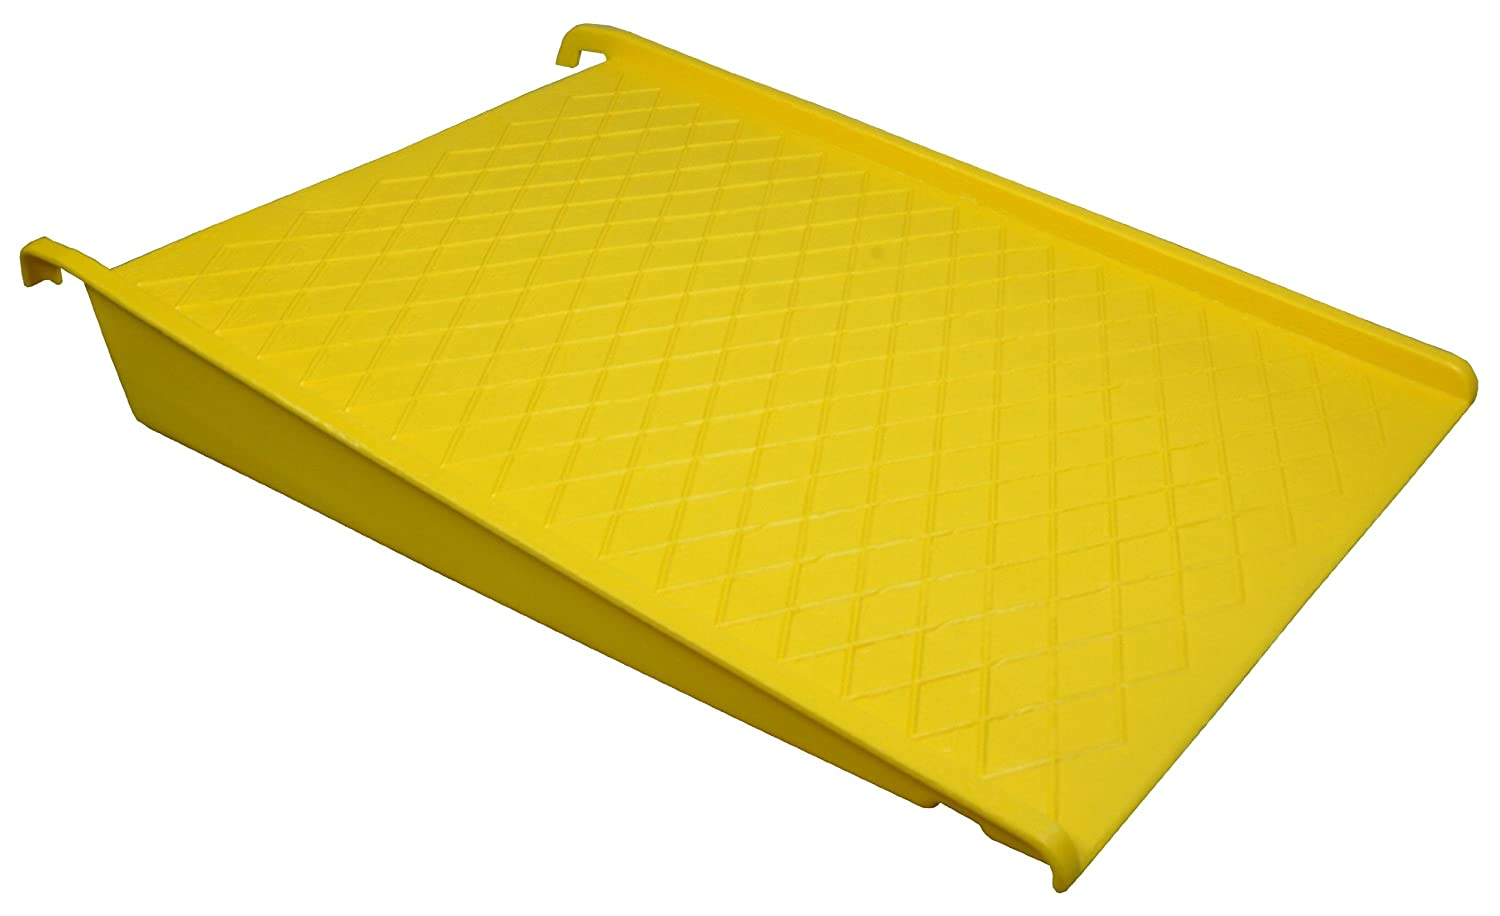 YW00346323 Homak Spill Containment Poly Pallet Ramp